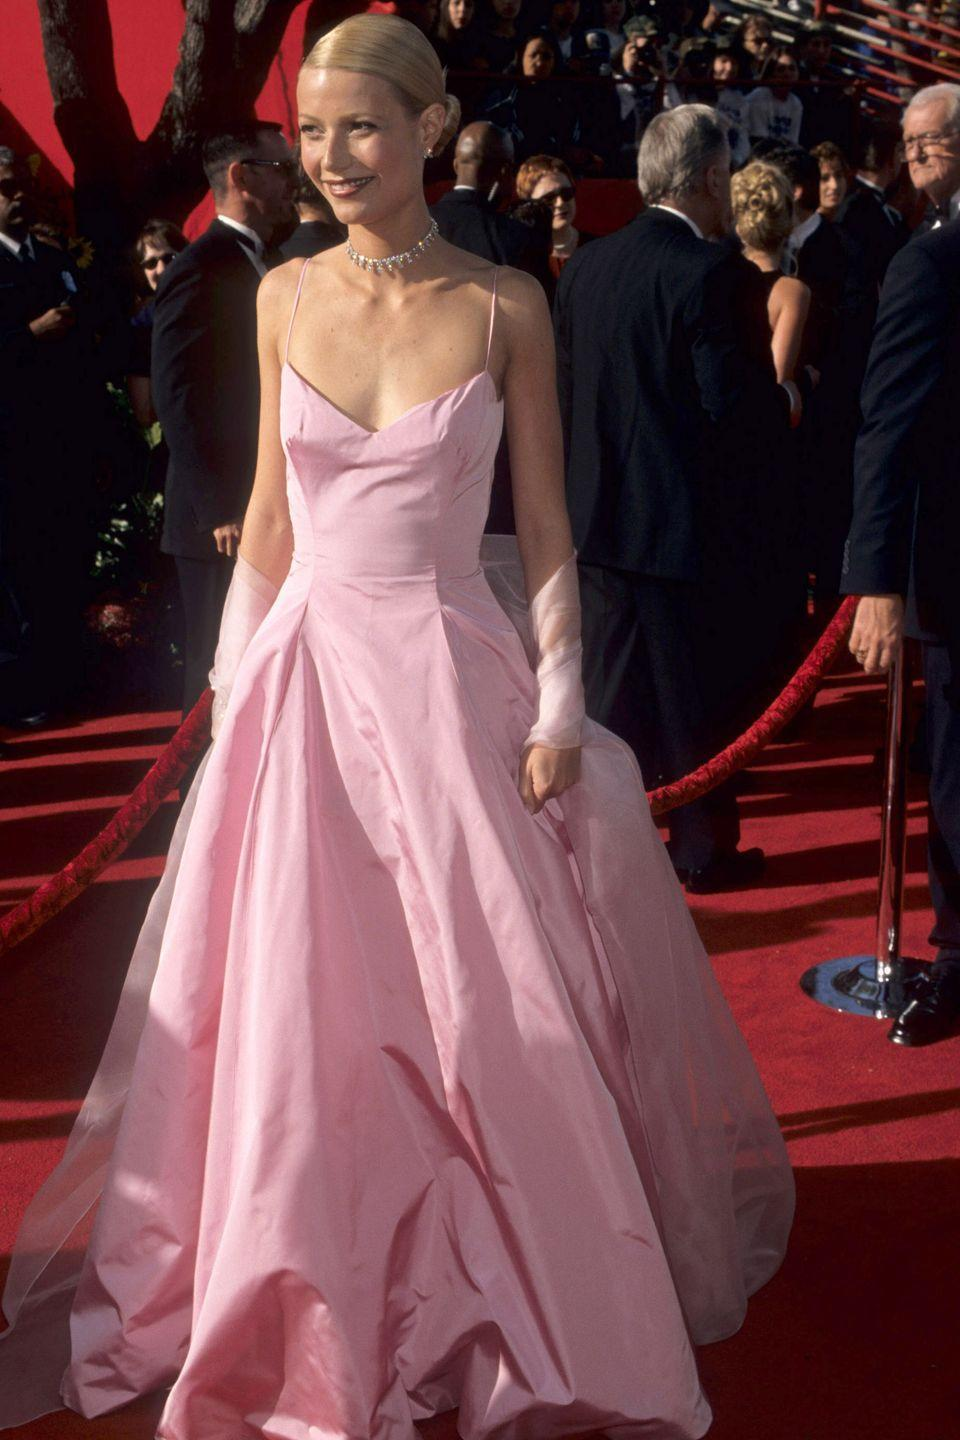 <p>Gwyneth Paltrow channeled Princess Aurora in a pale-pink Ralph Lauren gown at the 1999 Academy Awards, where she won Best Actress for <em>Shakespeare in Lov</em>e.</p>